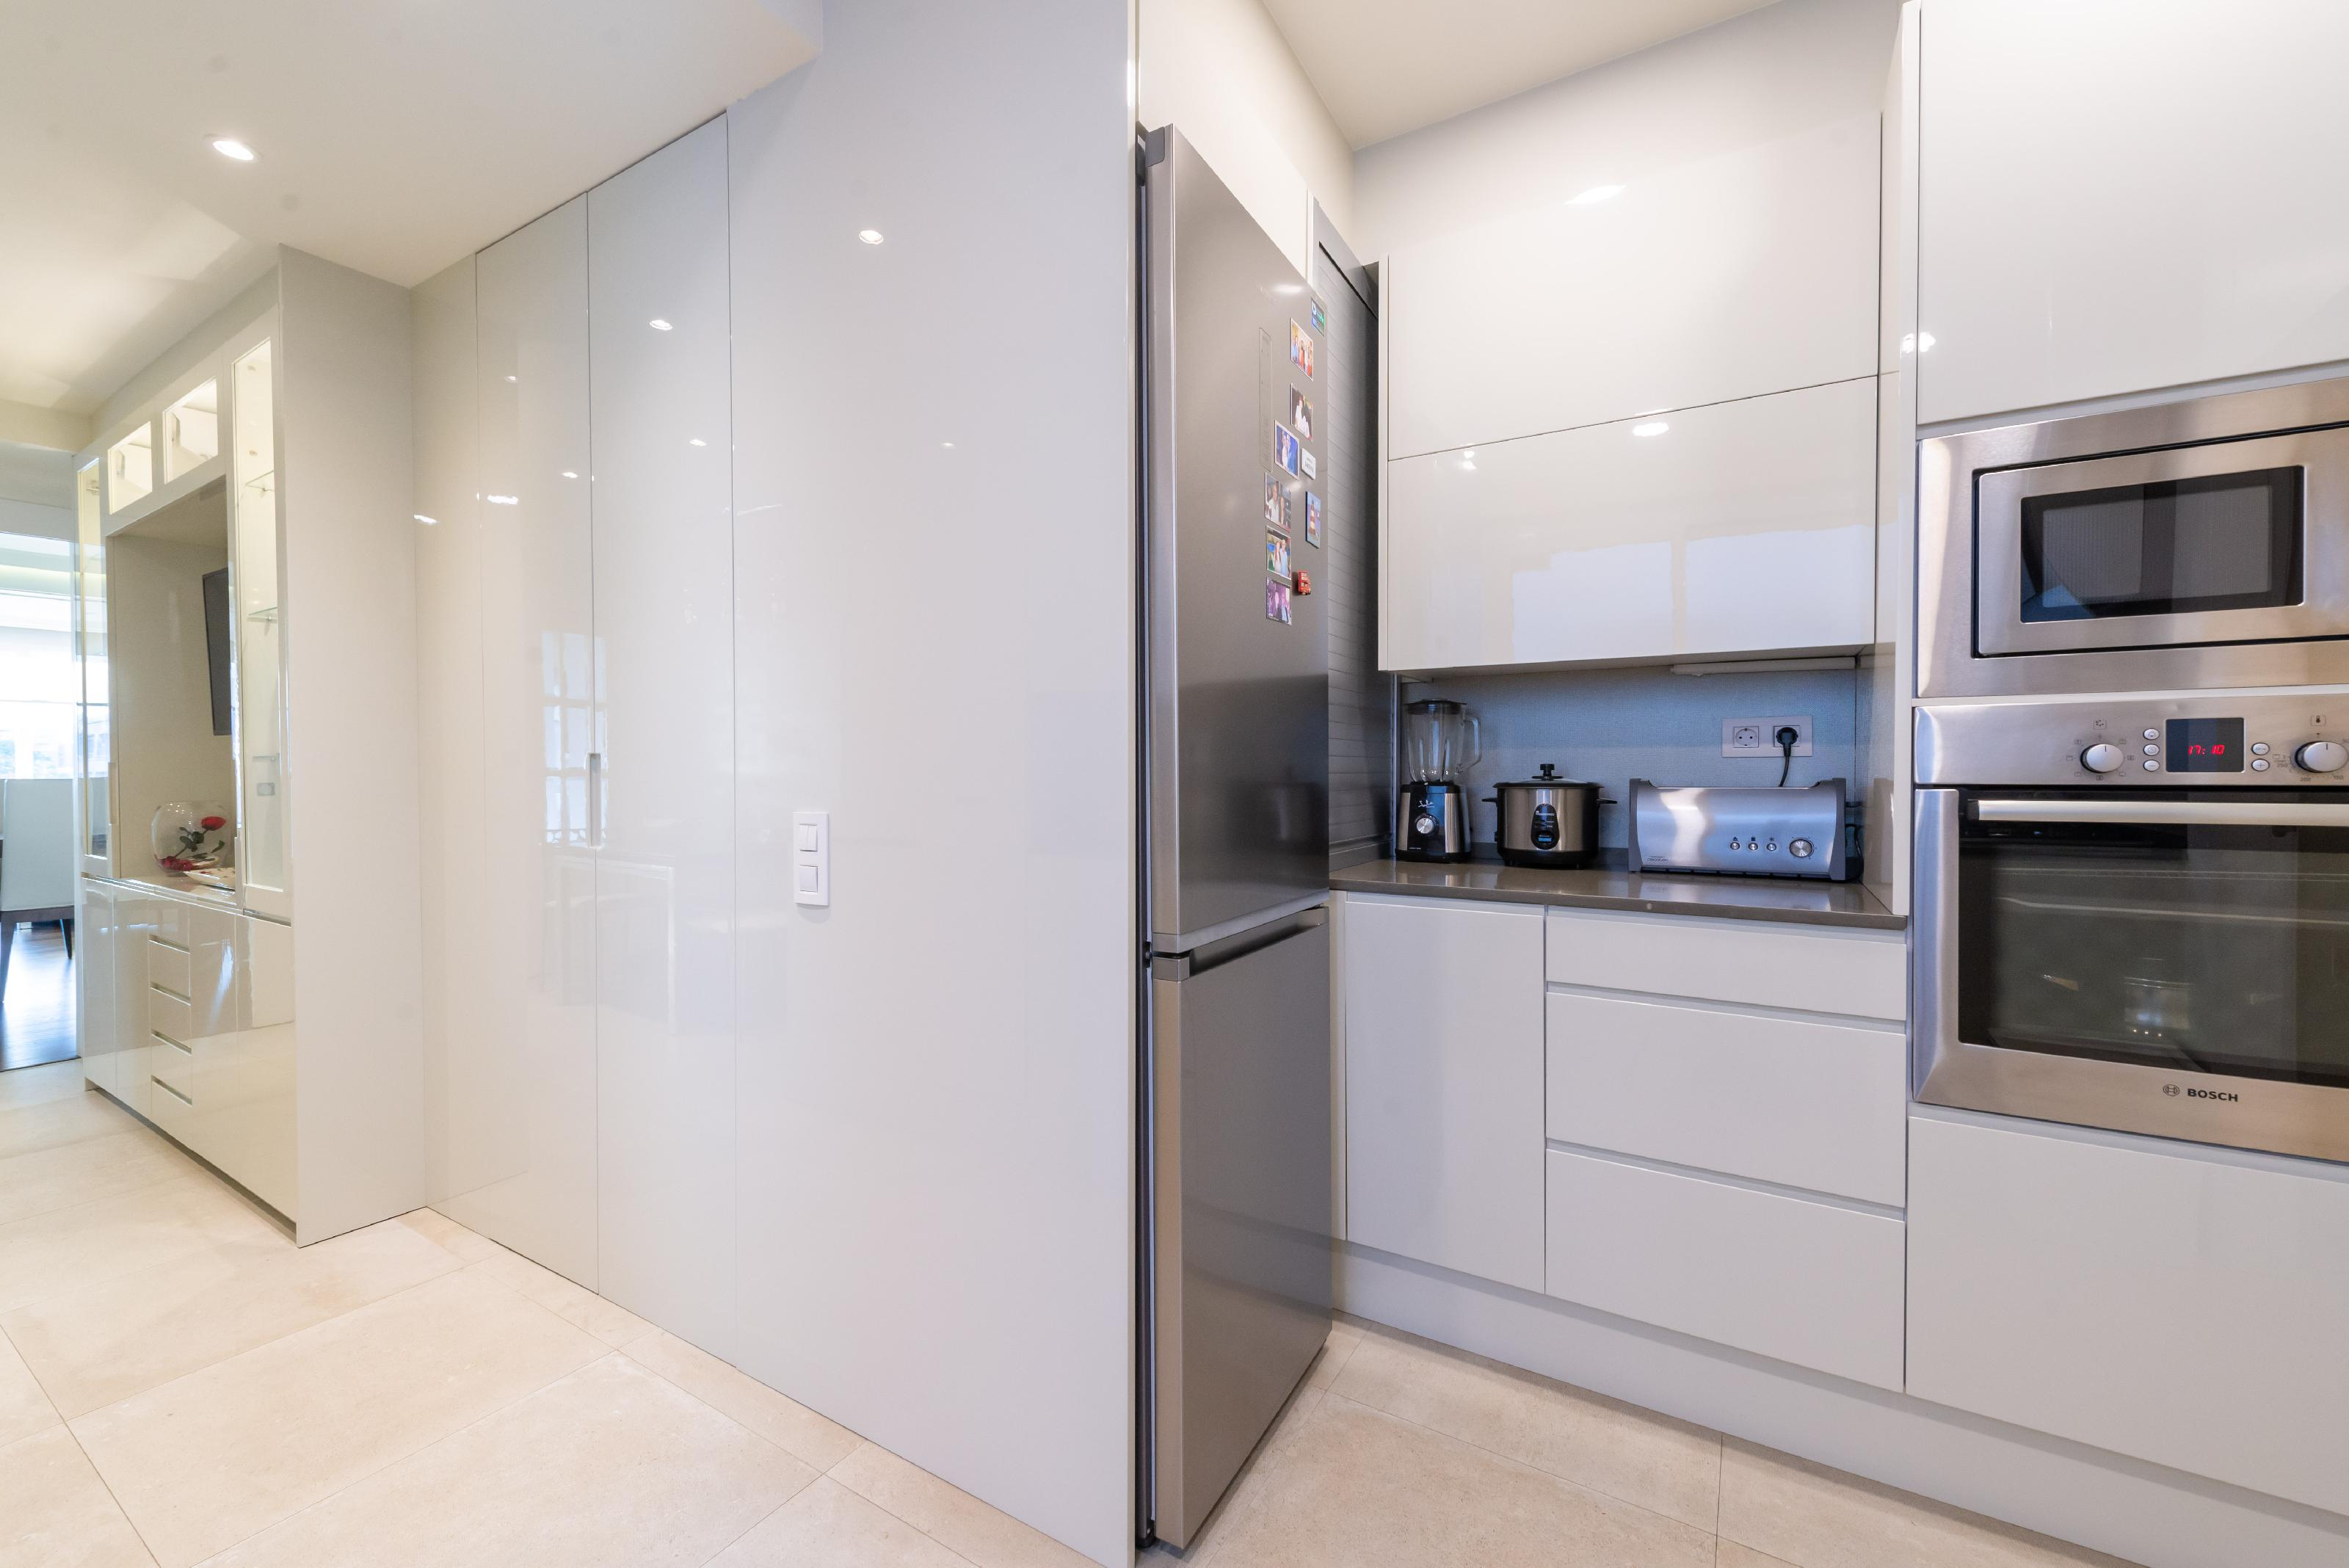 243891 Penthouse for sale in Sarrià-Sant Gervasi, Sant Gervasi-Galvany 13